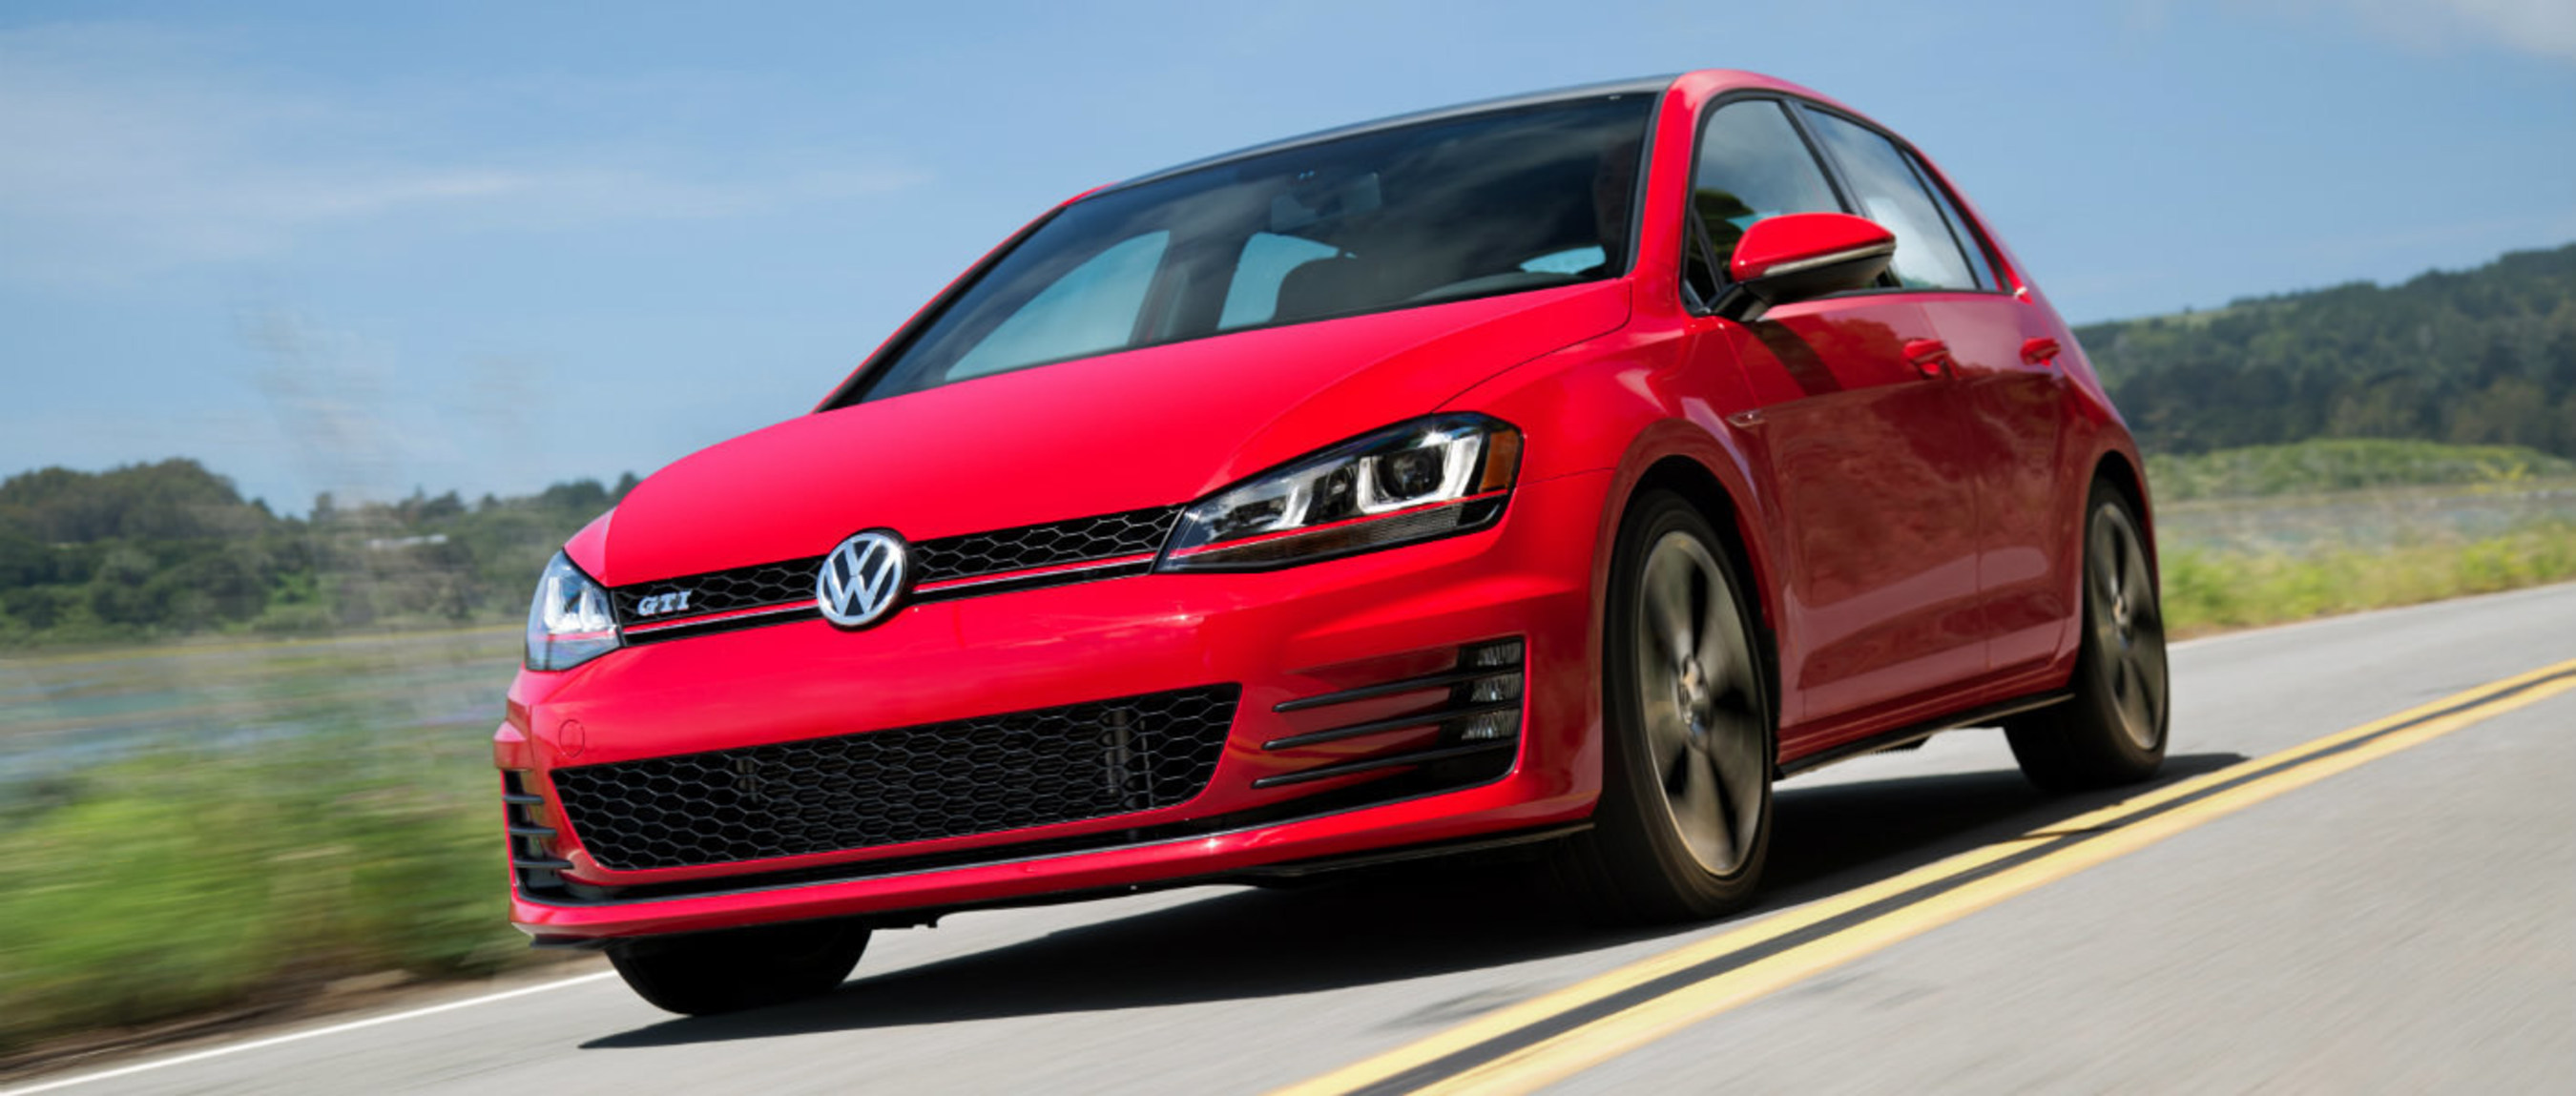 Puente Hills Volkswagen receives the 2016 Volkswagen Golf GTI into its showroom